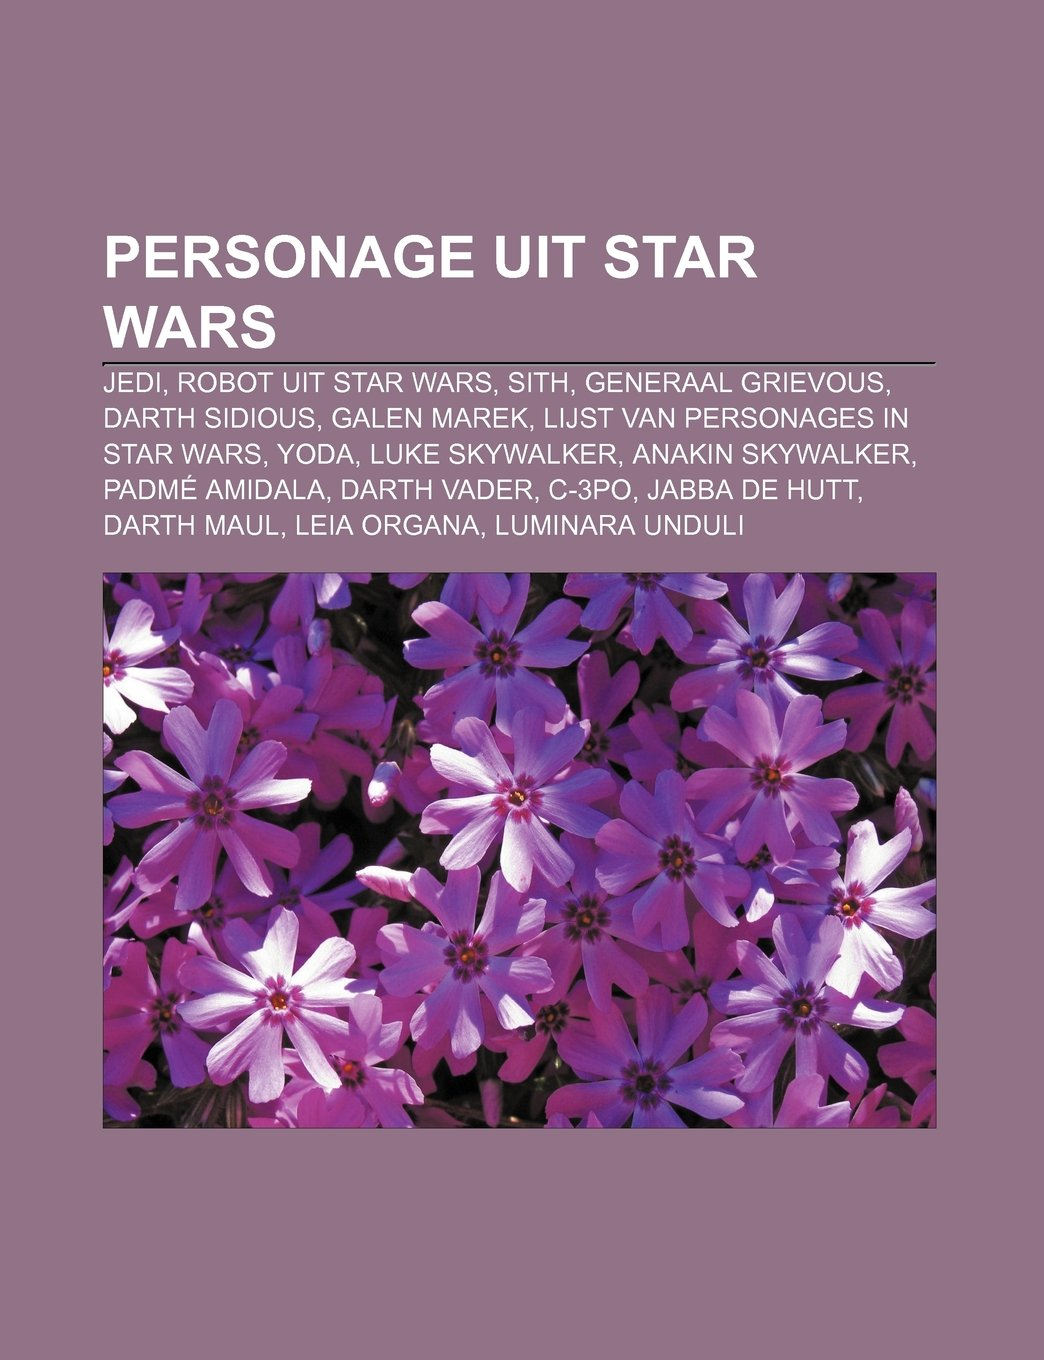 Personage uit Star Wars: Jedi, Robot uit Star Wars, Sith, Generaal Grievous, Darth Sidious, Galen Marek, Lijst van personages in Star Wars: Amazon.es: Bron: Wikipedia: Libros en idiomas extranjeros